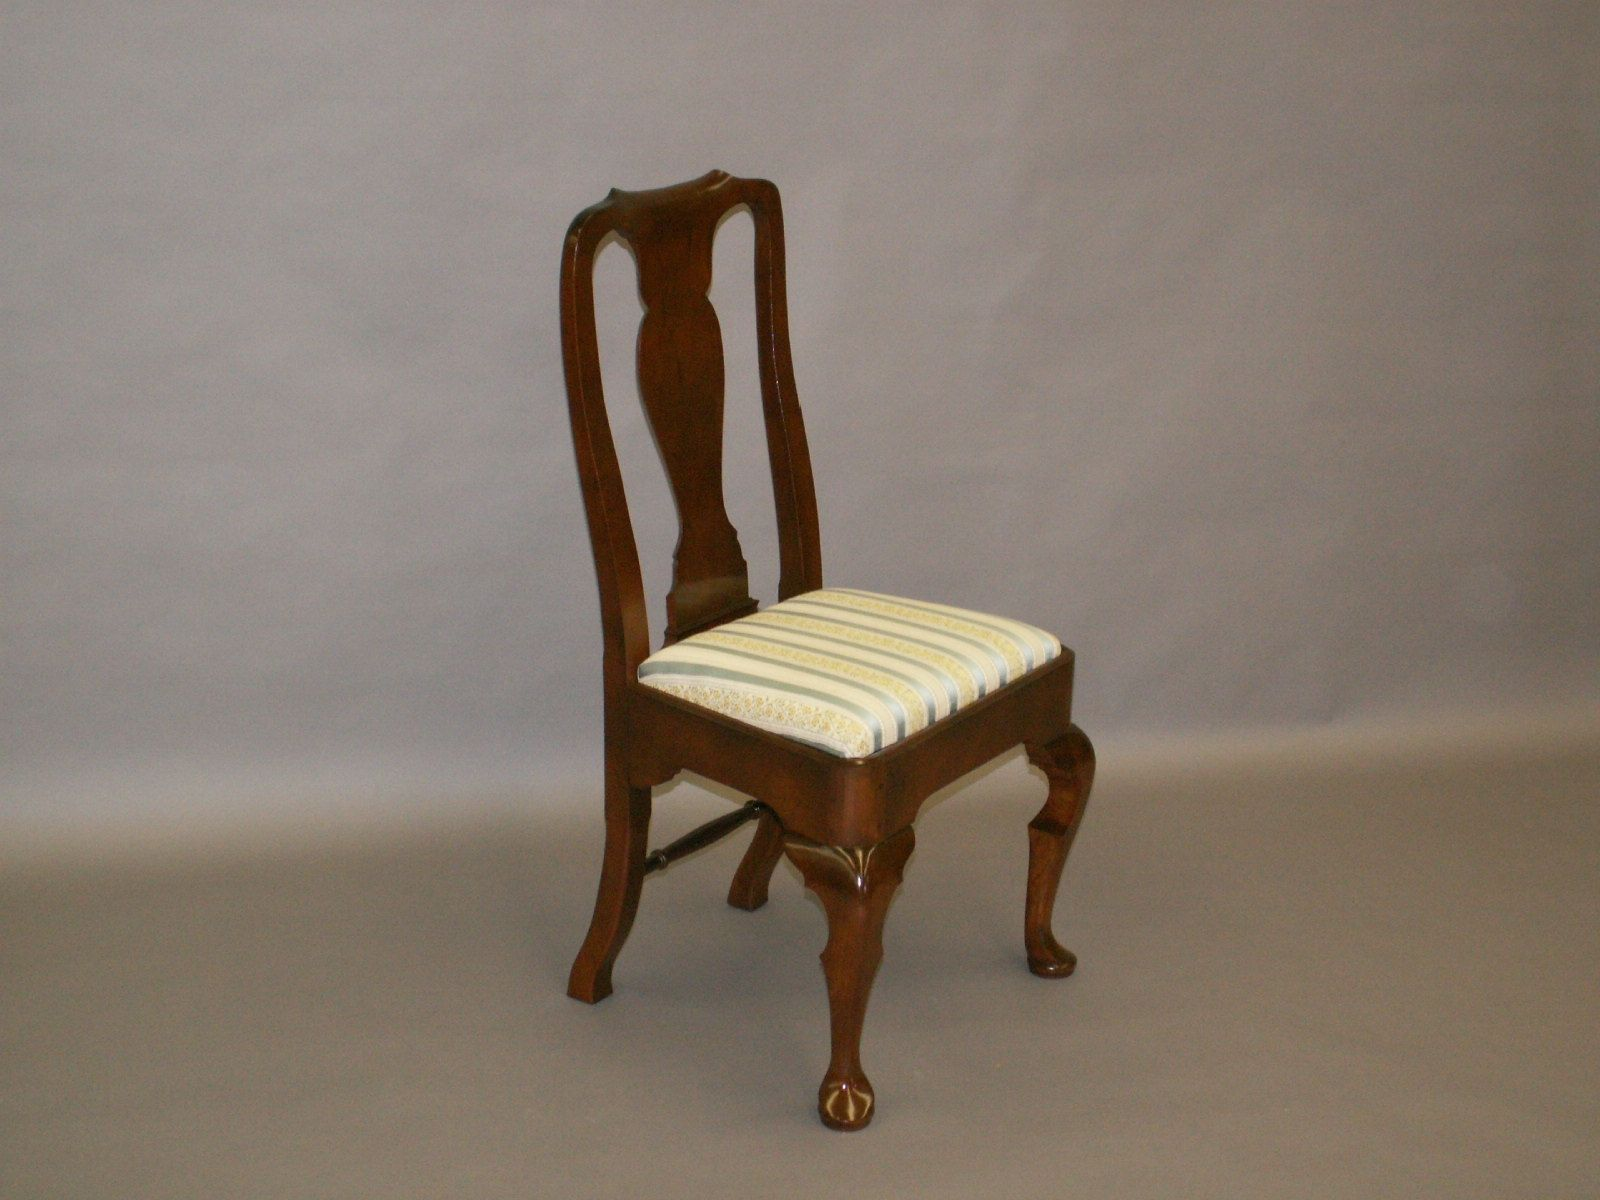 Handmade Cherry Queen Anne Chair Reproduction by John Kizer s Fine